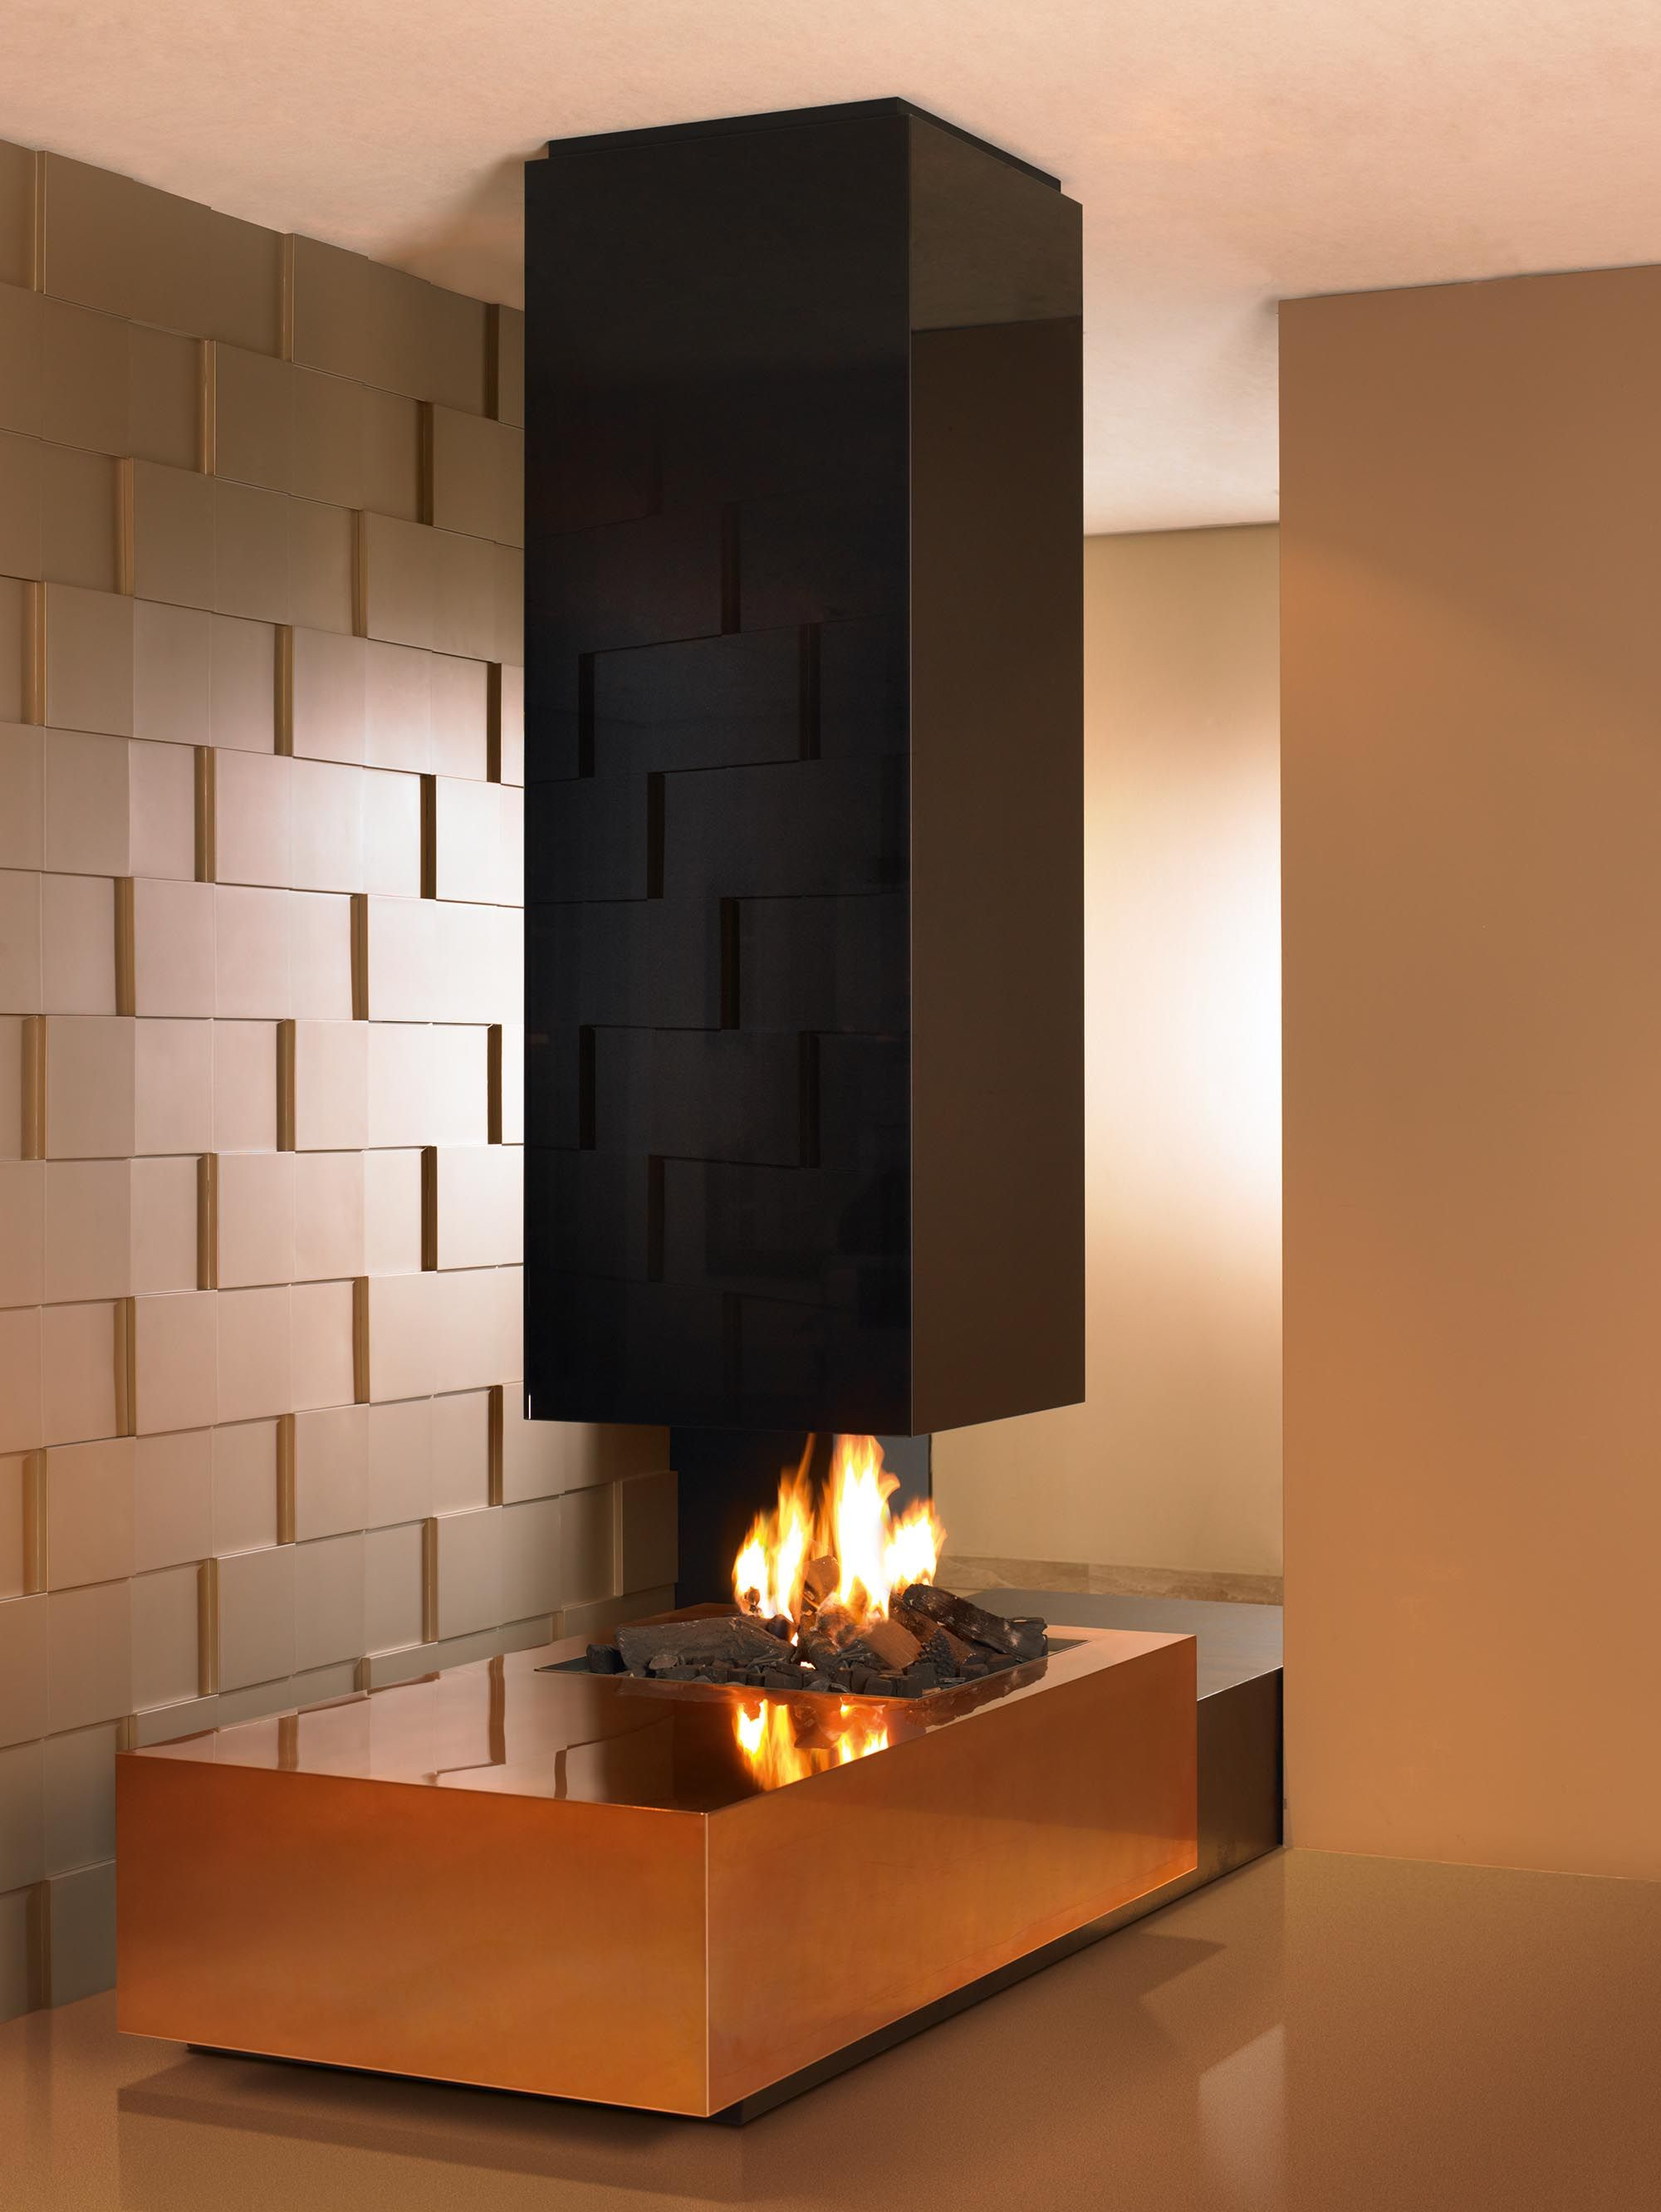 Sleek Modern Dark Bathroom With Glossy Tiled Walls: A Bold And Sleek Contemporary Suspended Gas Fireplace With